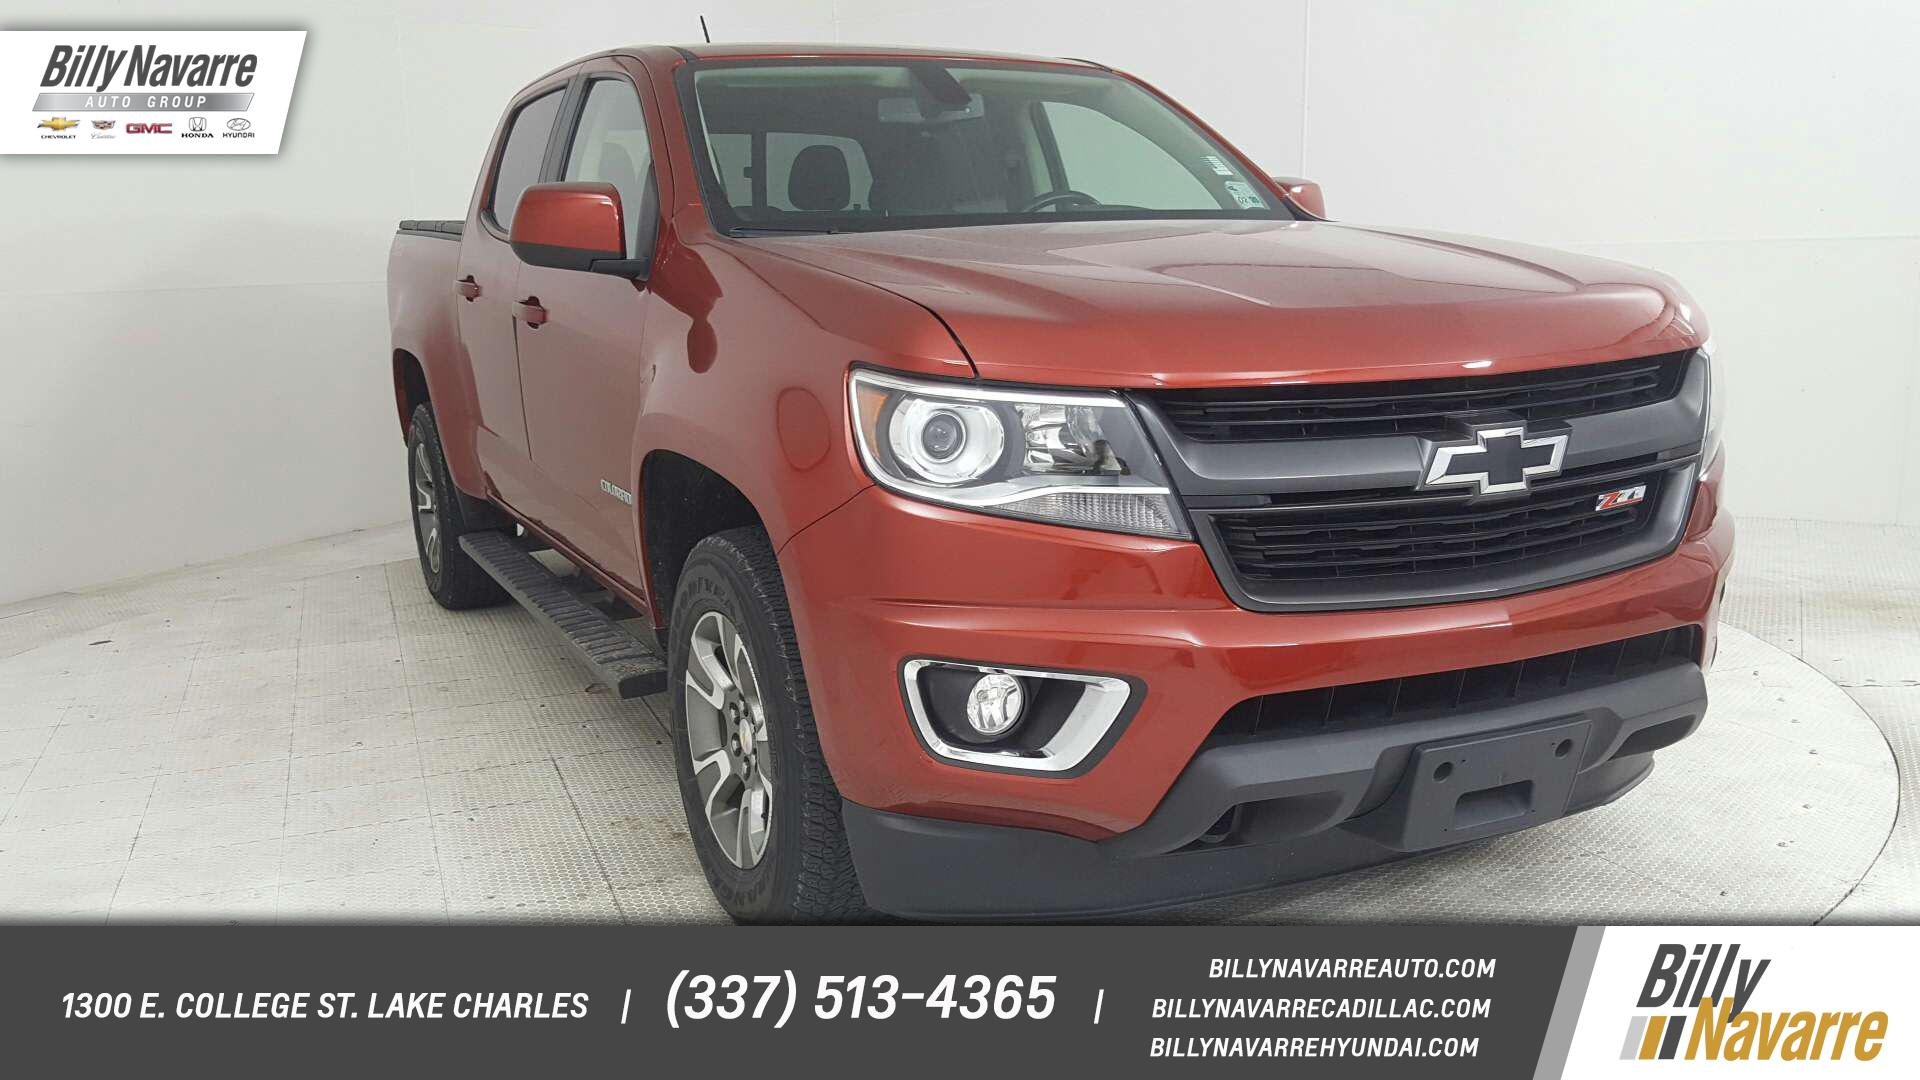 Cheap Cars For Sale In Lake Charles La >> Lake Charles Used Vehicles For Sale